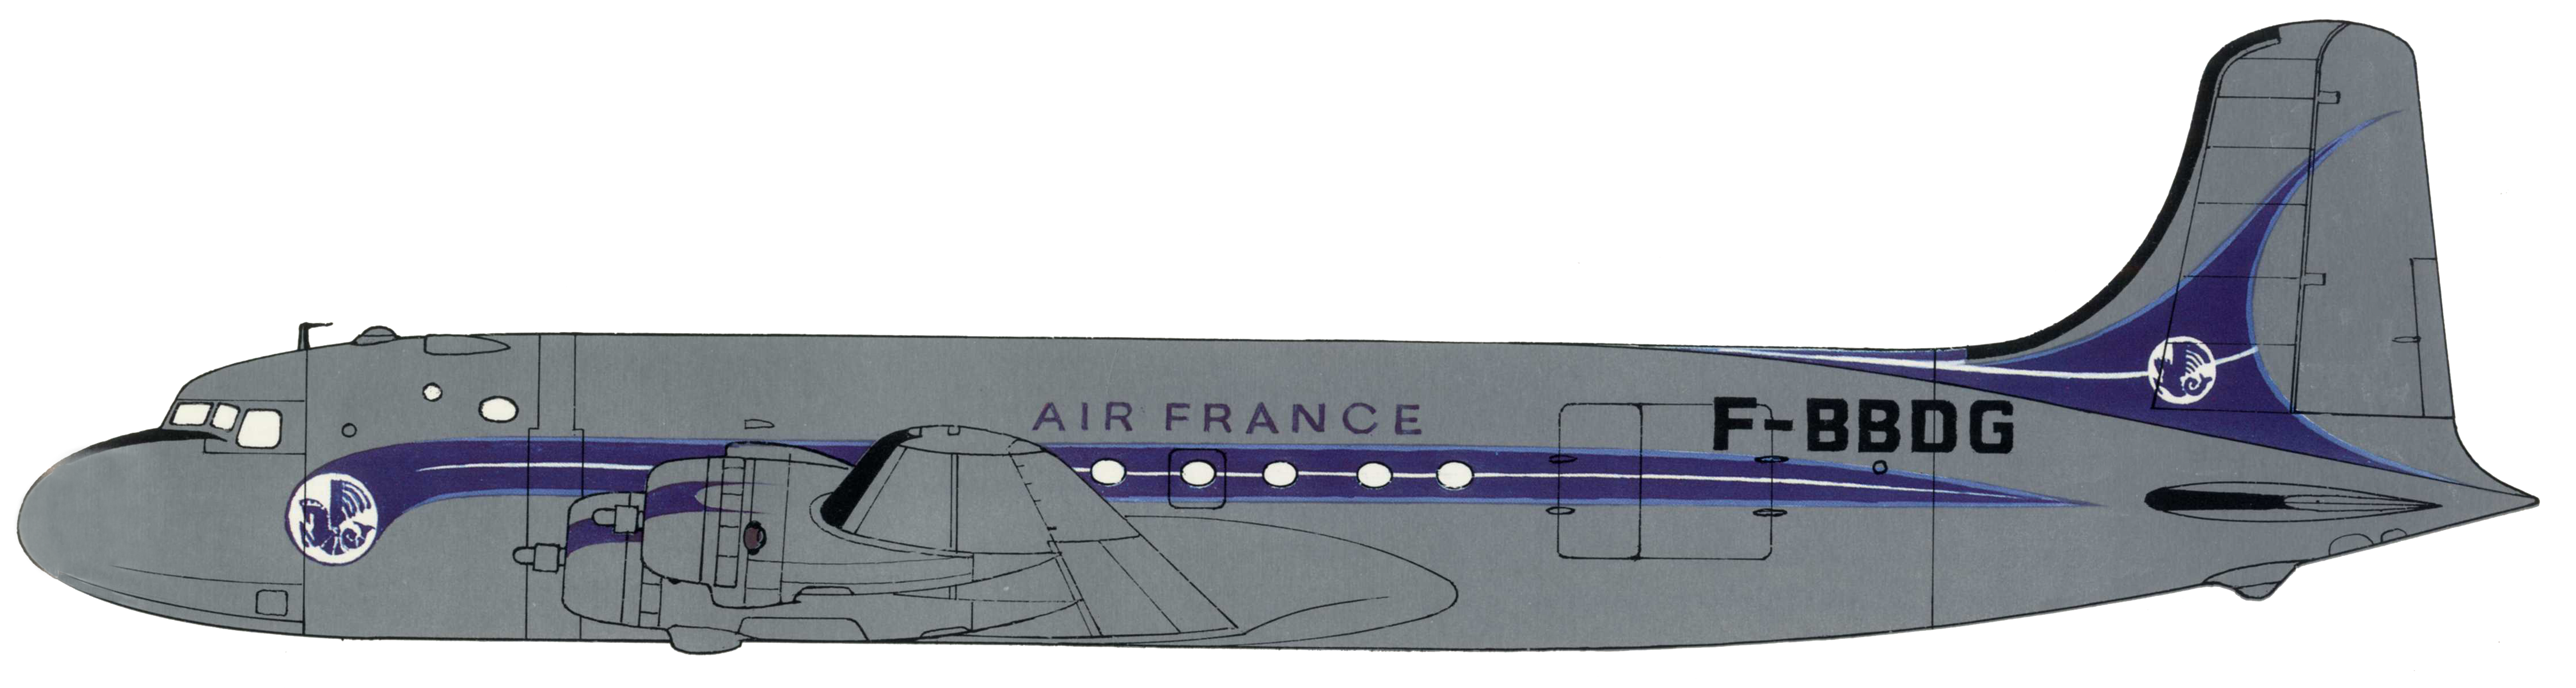 profil_dc4_air_france.png